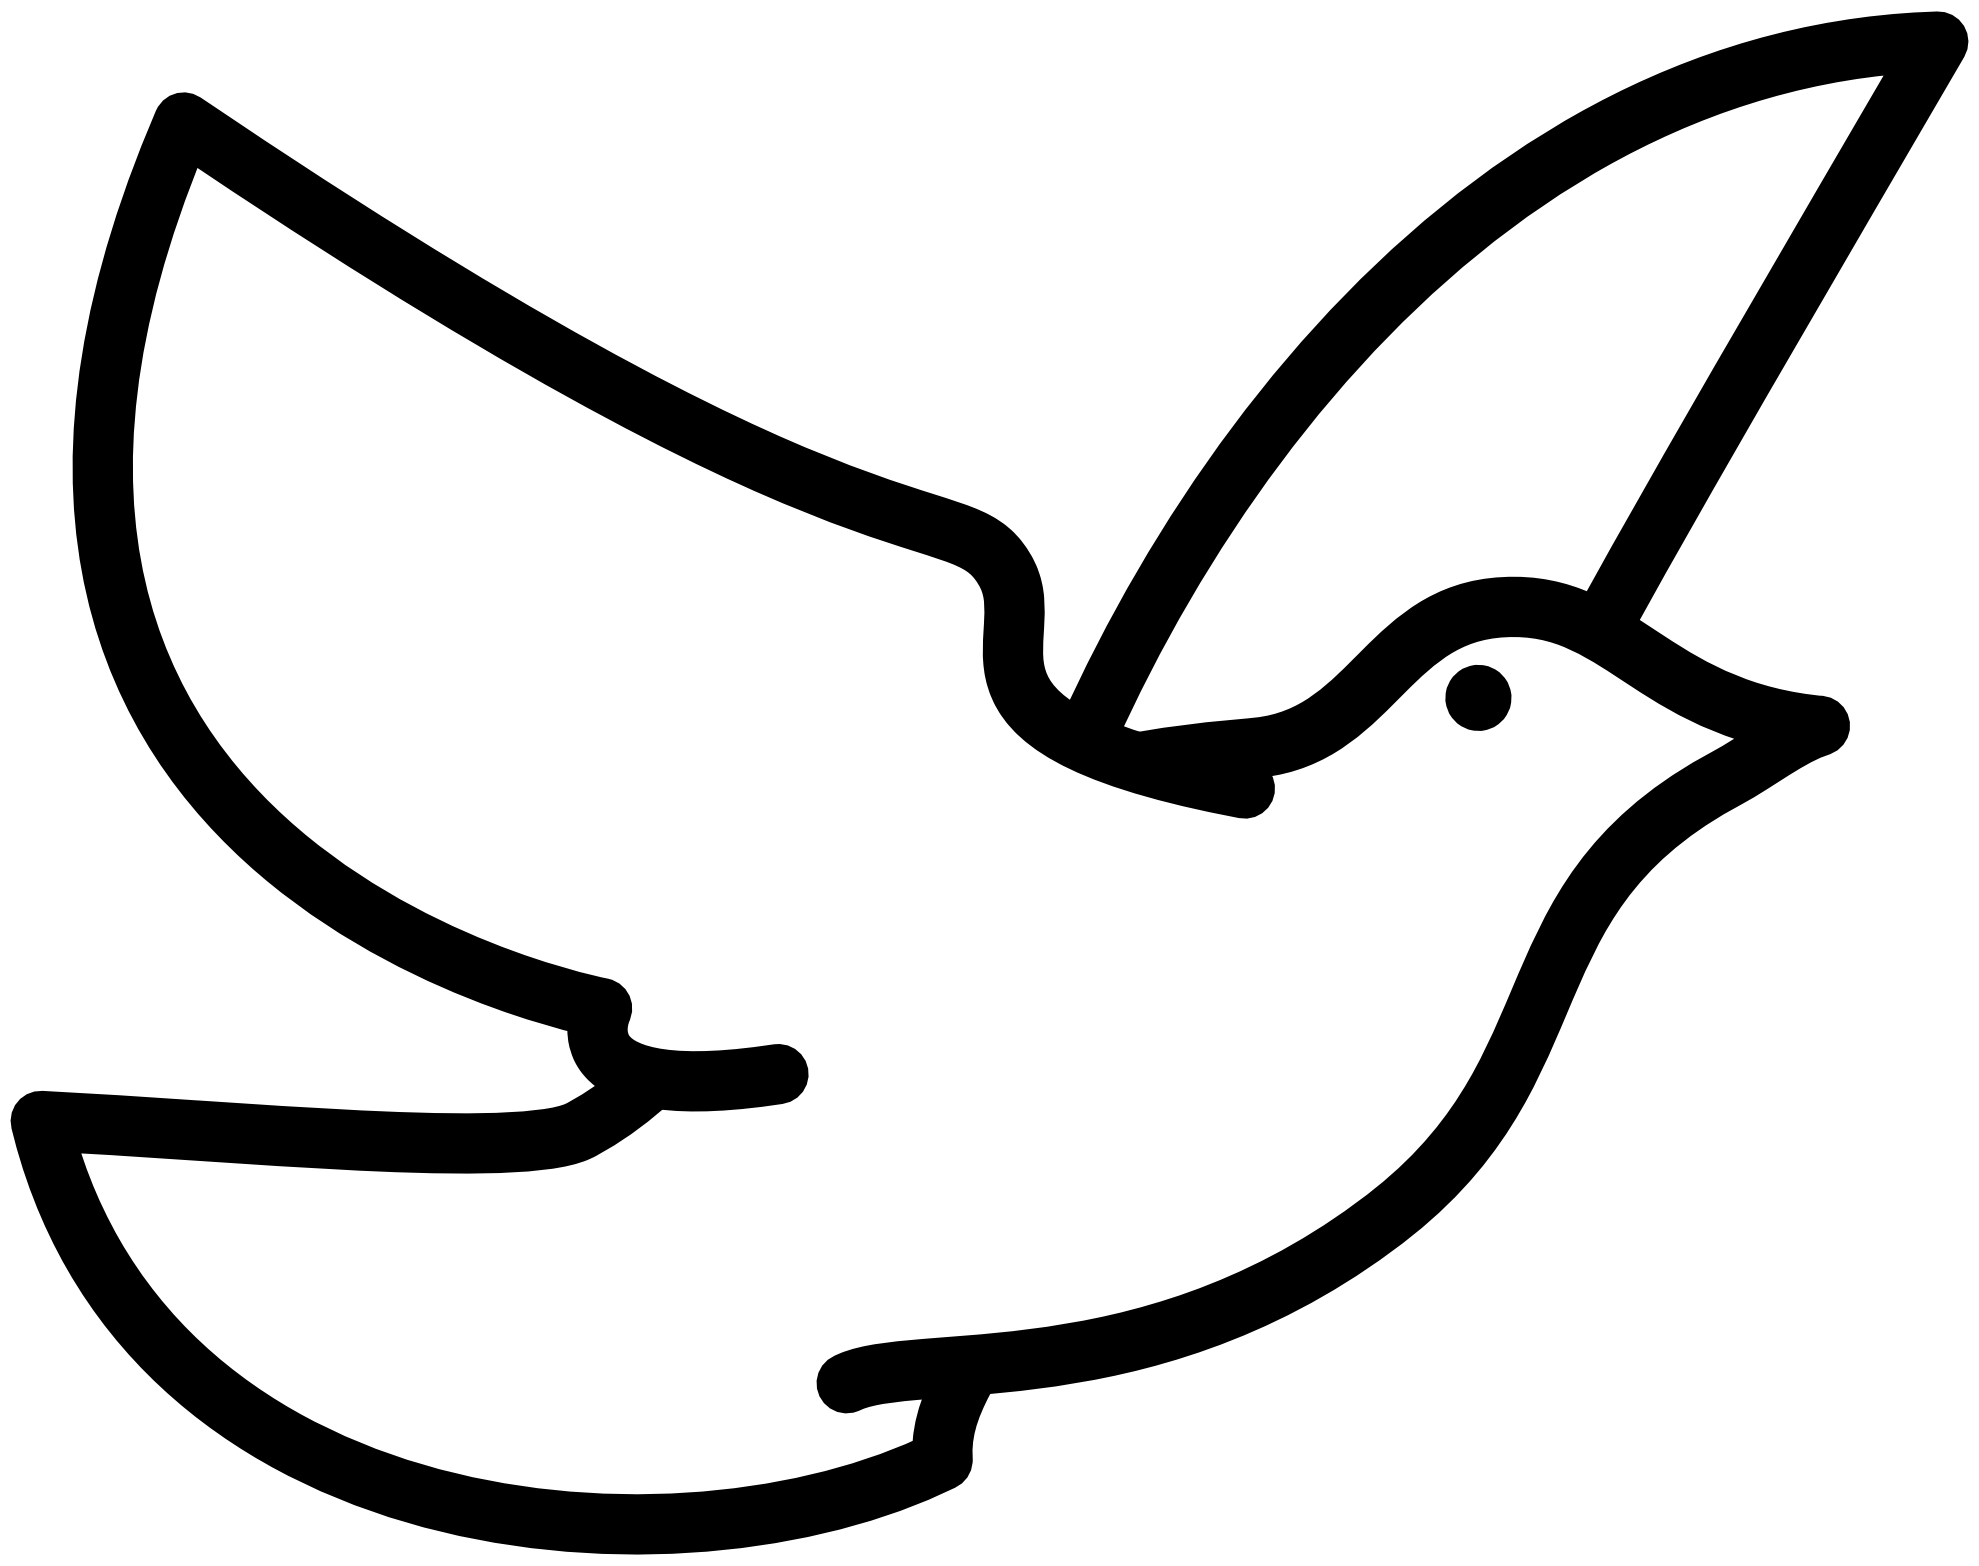 Peace Sign clipart simple Dove Xmas 119(K) Art Peace